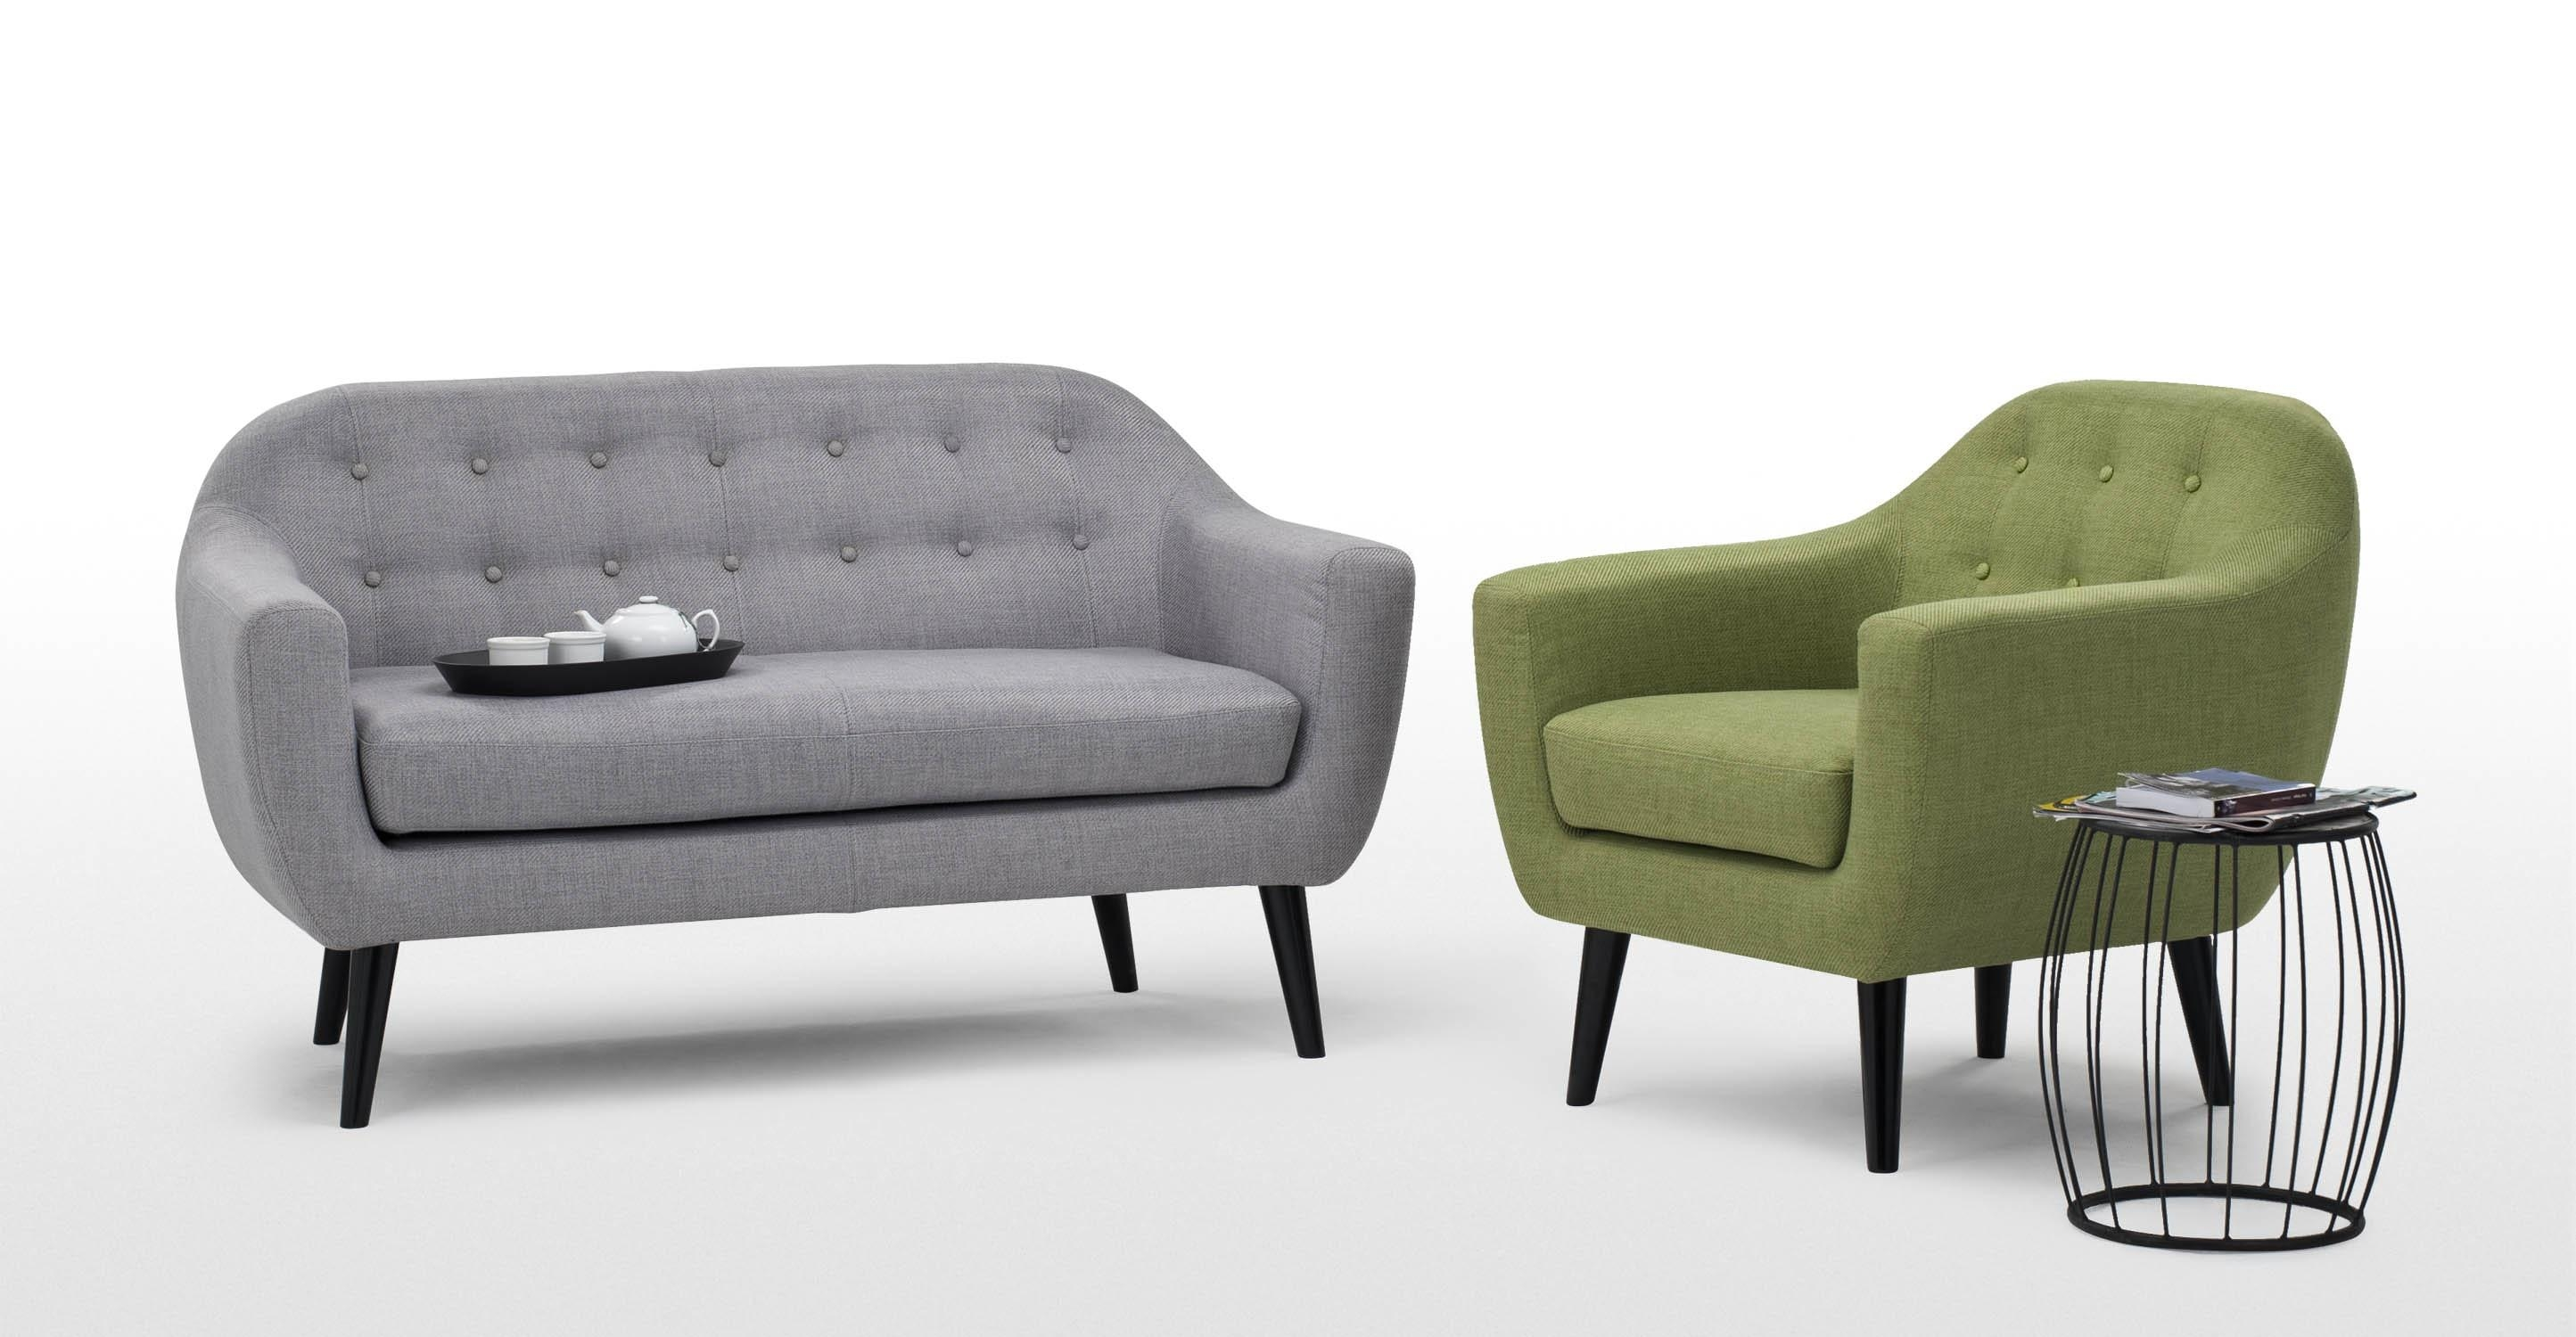 Ritchie 2 Seater Sofa In Pearl Grey | Made For 2 Seater Sofas (View 2 of 20)